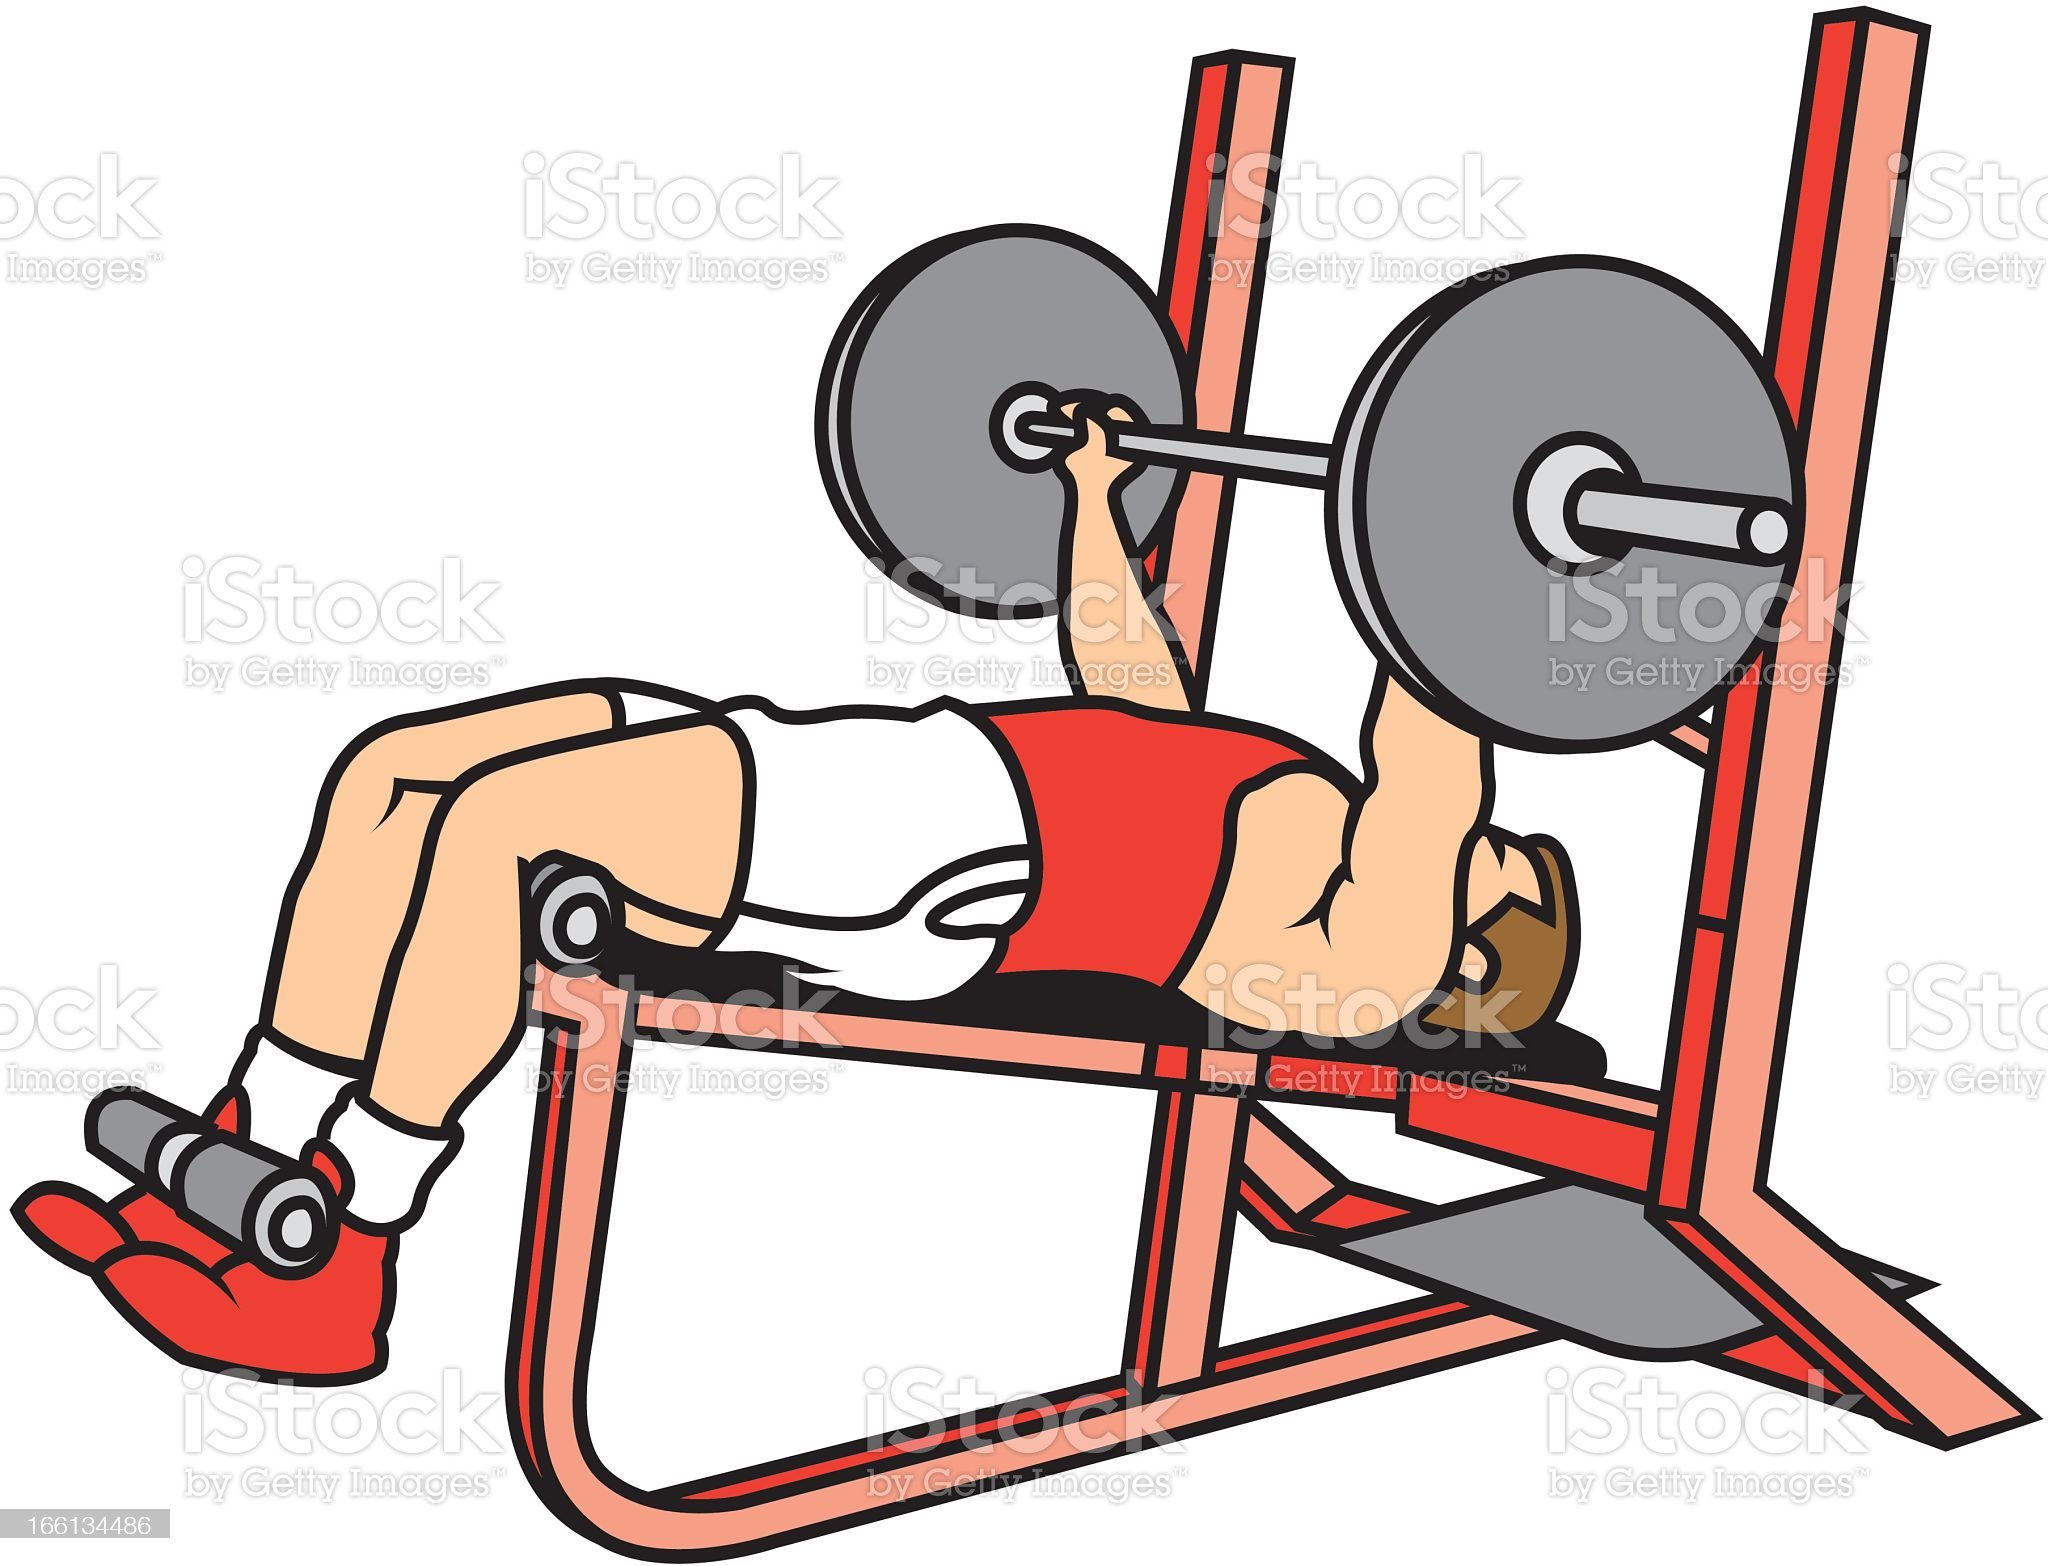 Man Lifting Weights royalty-free stock vector art